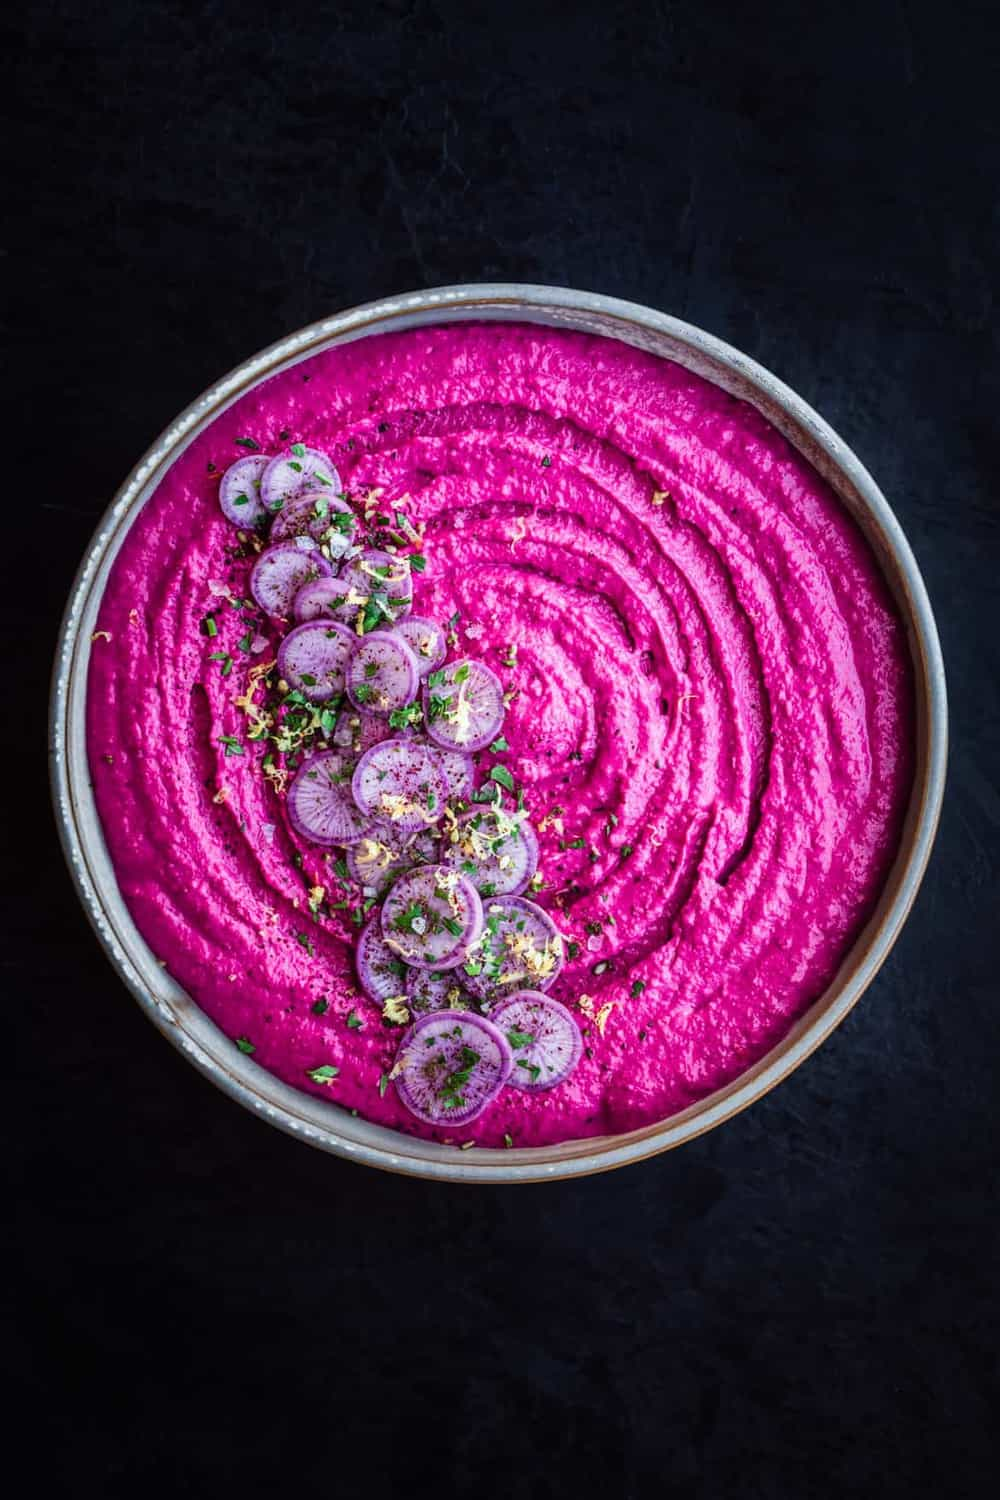 Beet Hummus with Ninja Radishes, Parsley, Lemon Zest, Sumac & Flaky Sea Salt in a white bowl, overhead shot on a black background.